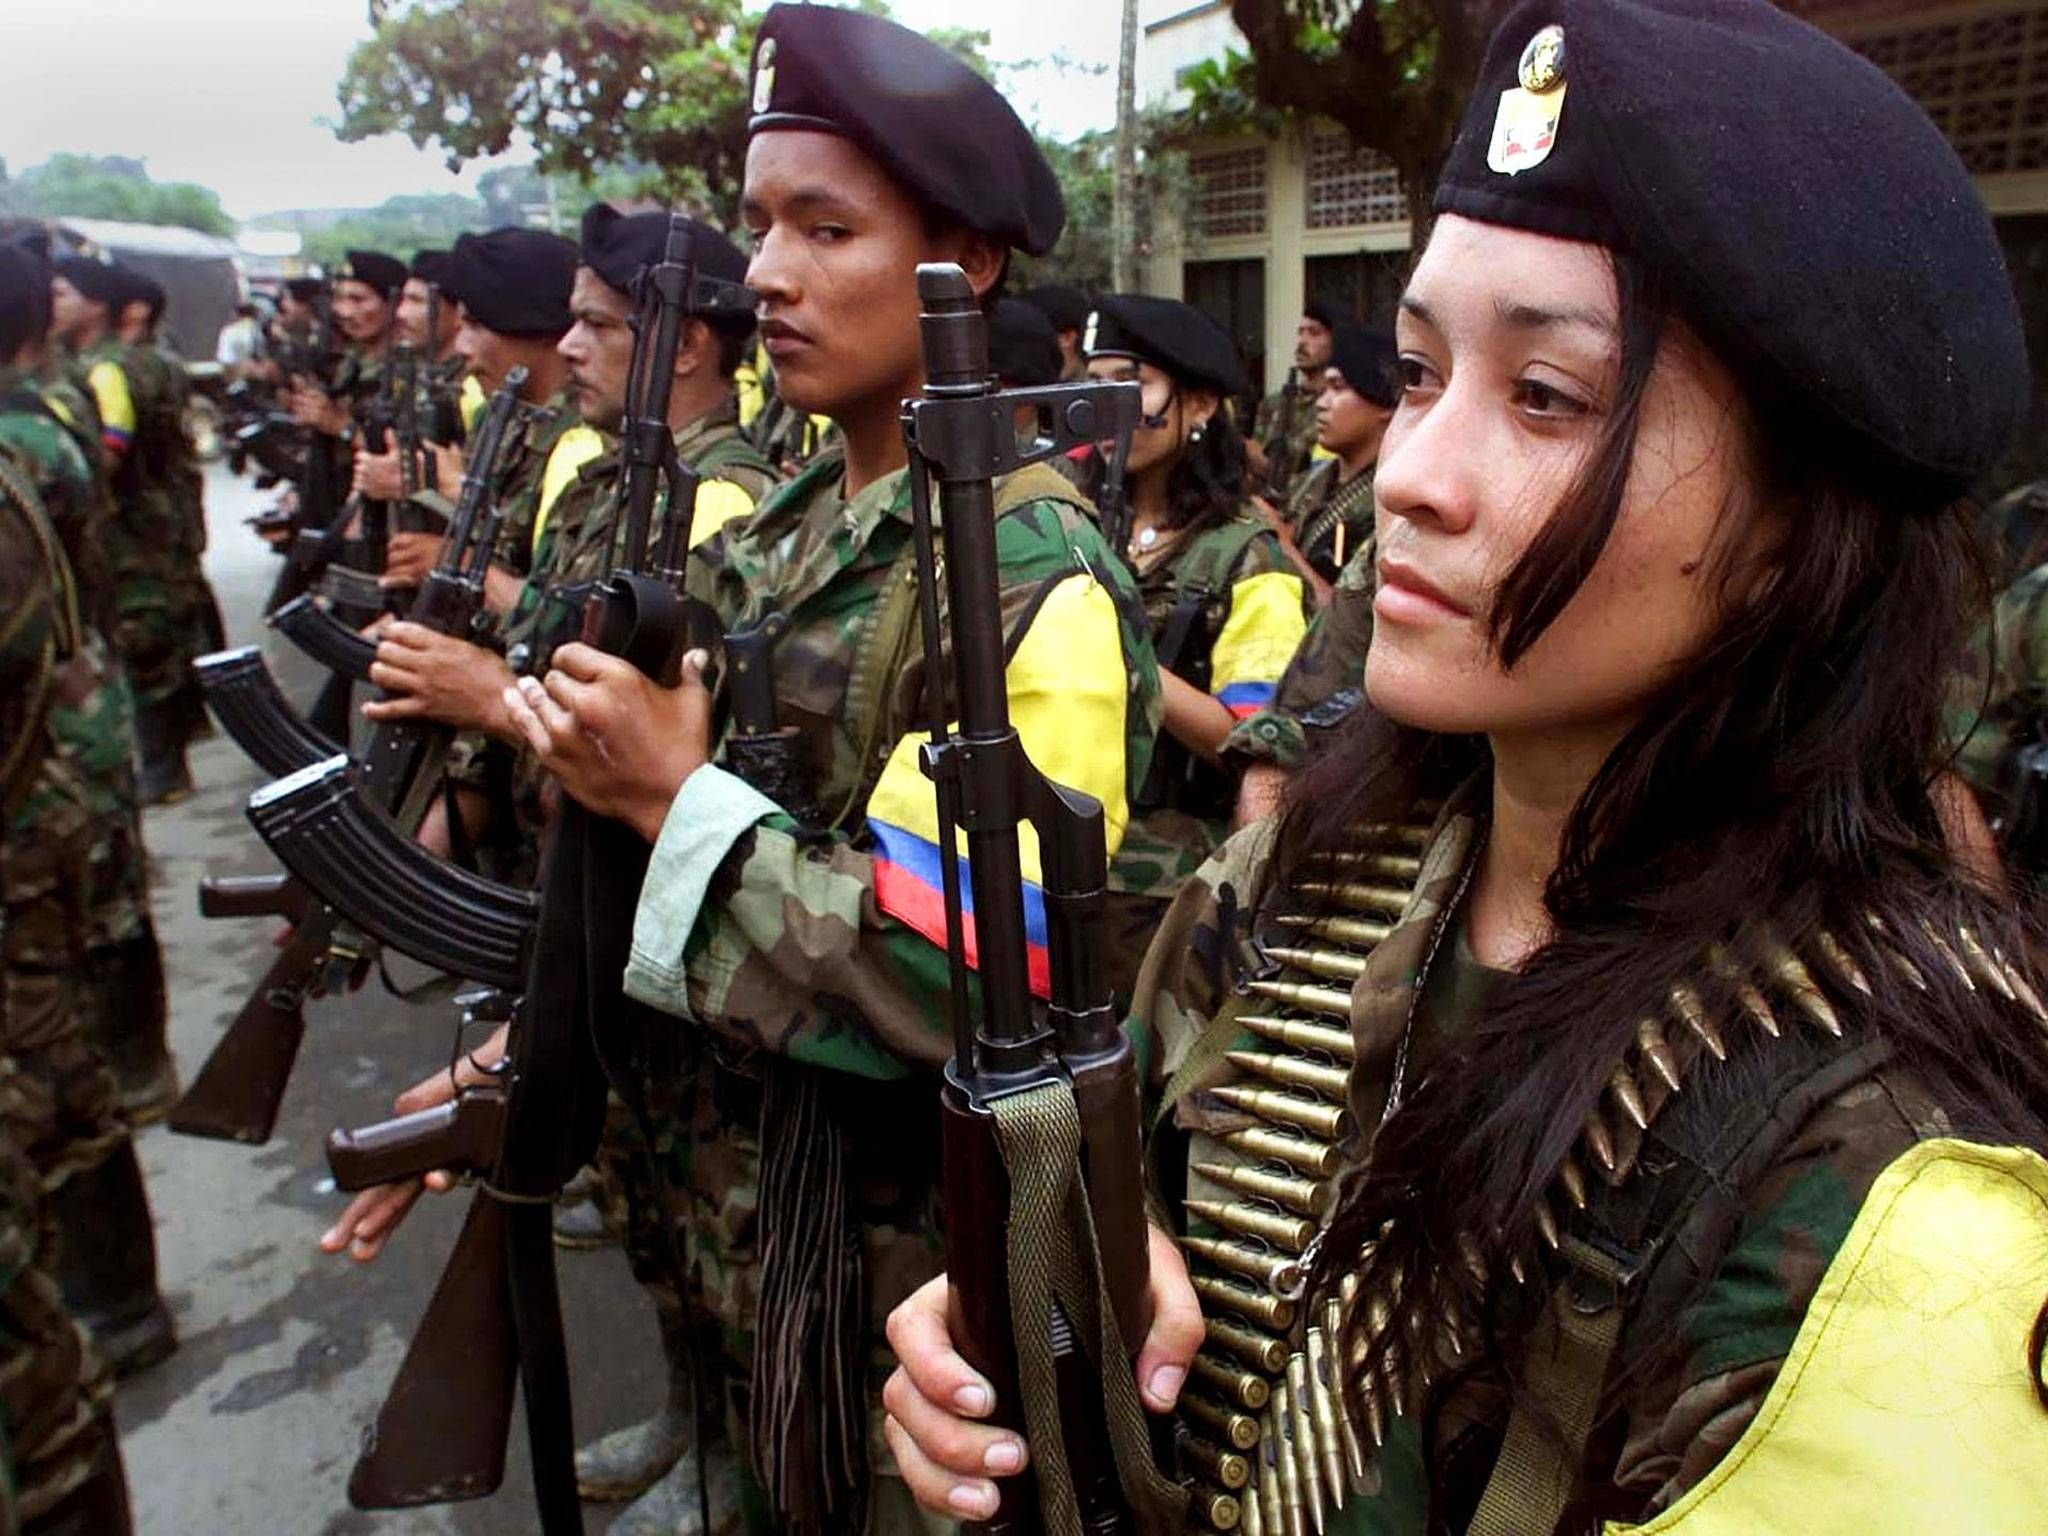 10. FARC and the Patriotic Union